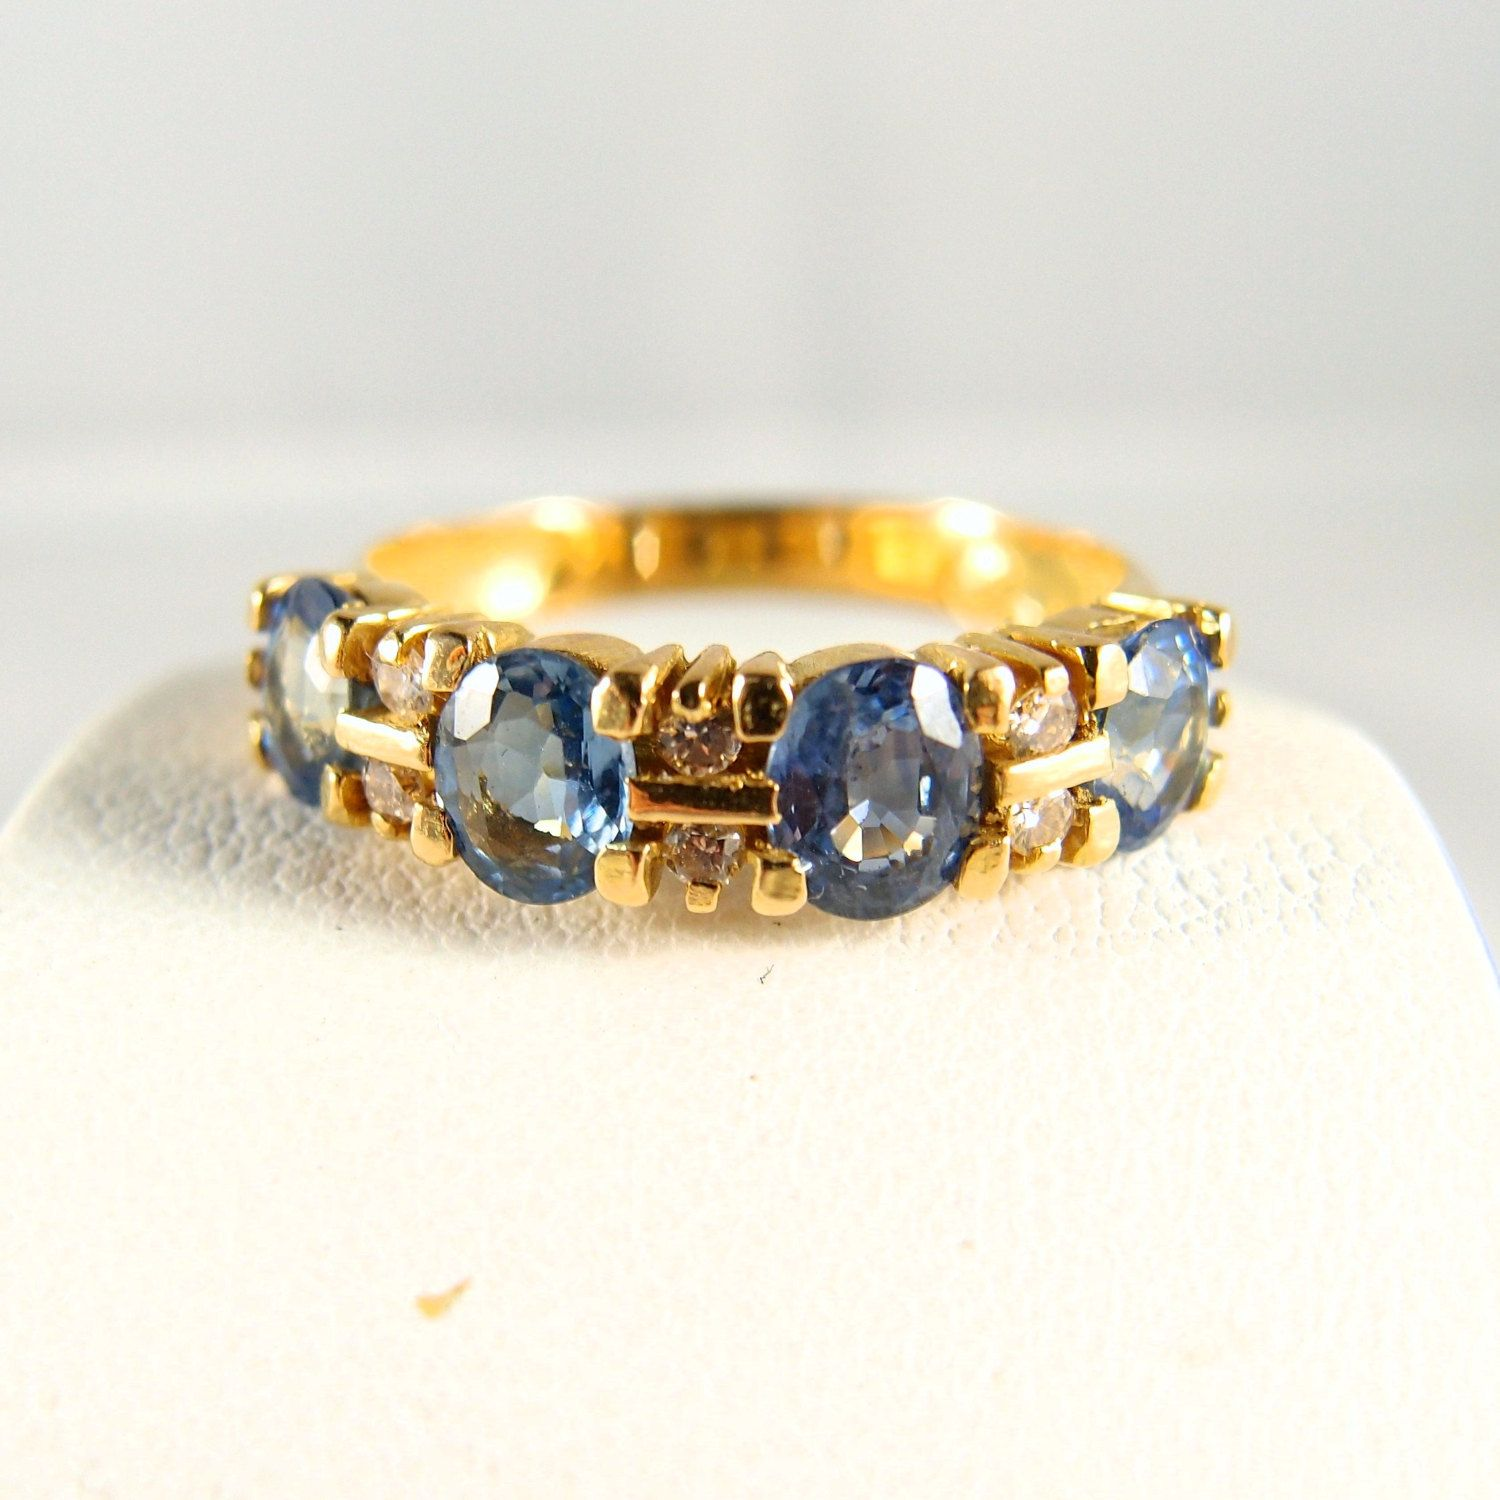 Superb solid gold ring with gorgeous sapphires Stamped 18K French